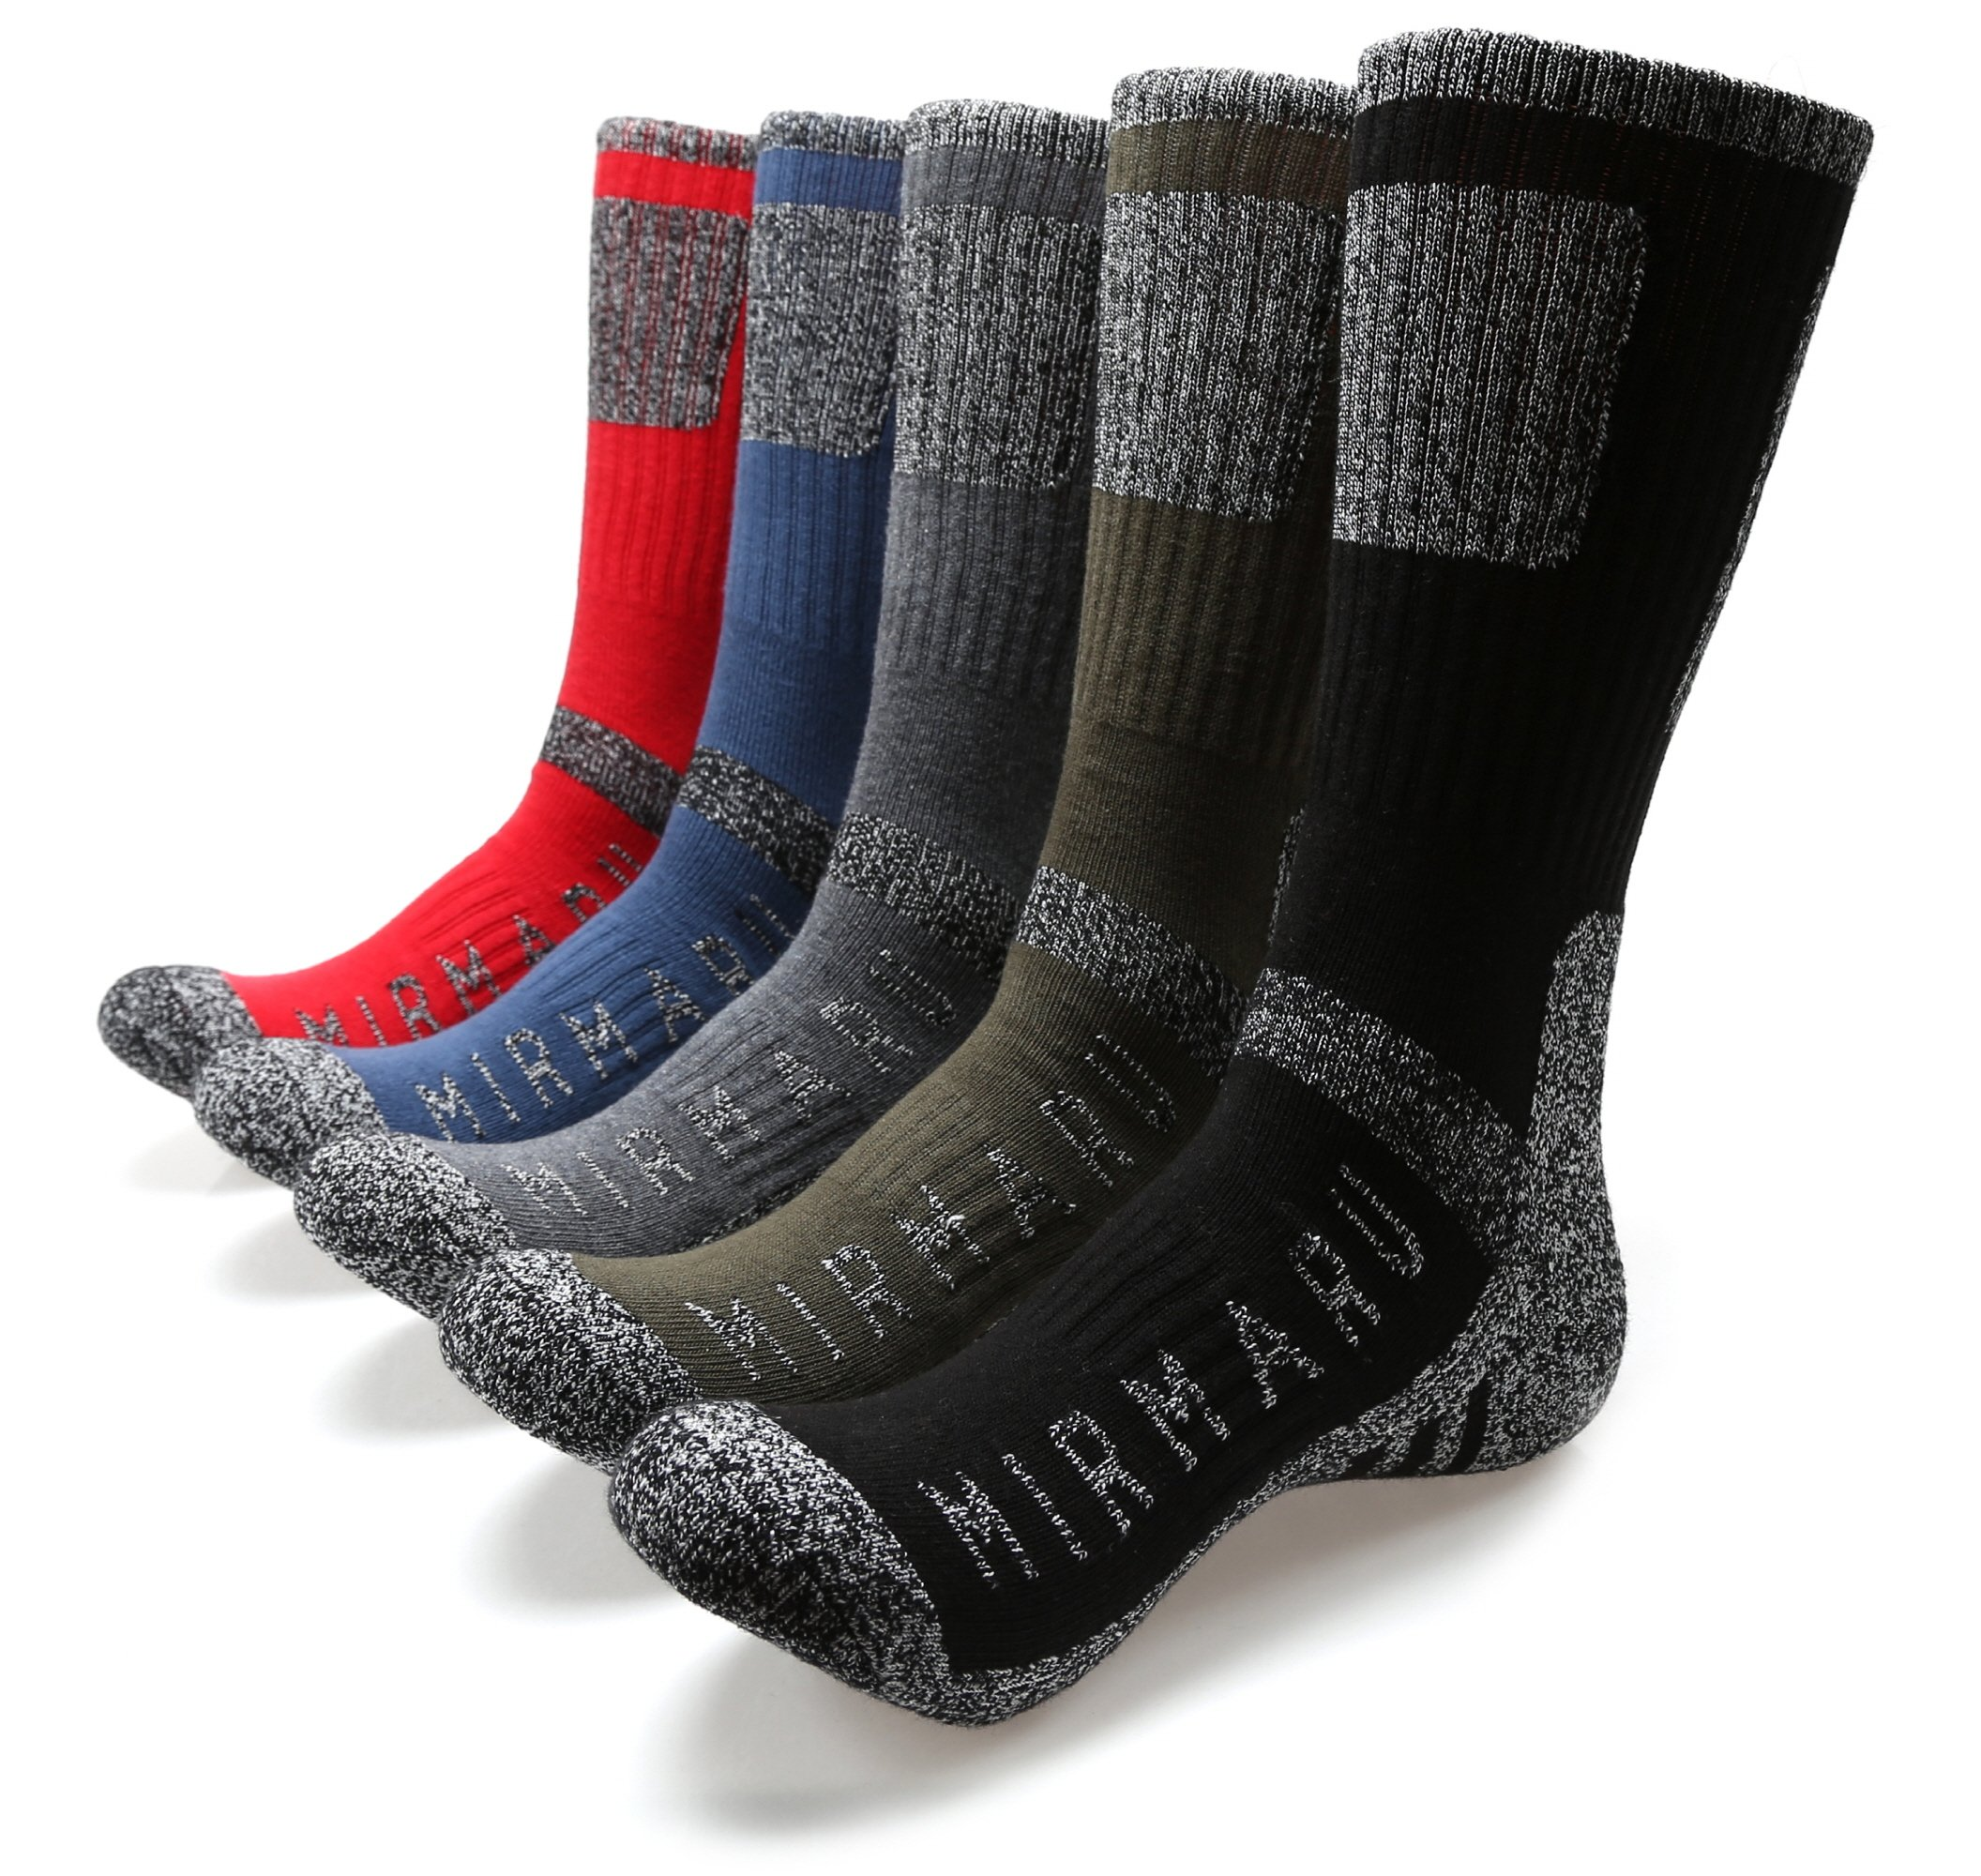 MIRMARU M203-Men's 5 Pairs Multi Performance Outdoor Sports Hiking Trekking Crew Socks (Black,Char,Olive,Blue,Red) by MIRMARU